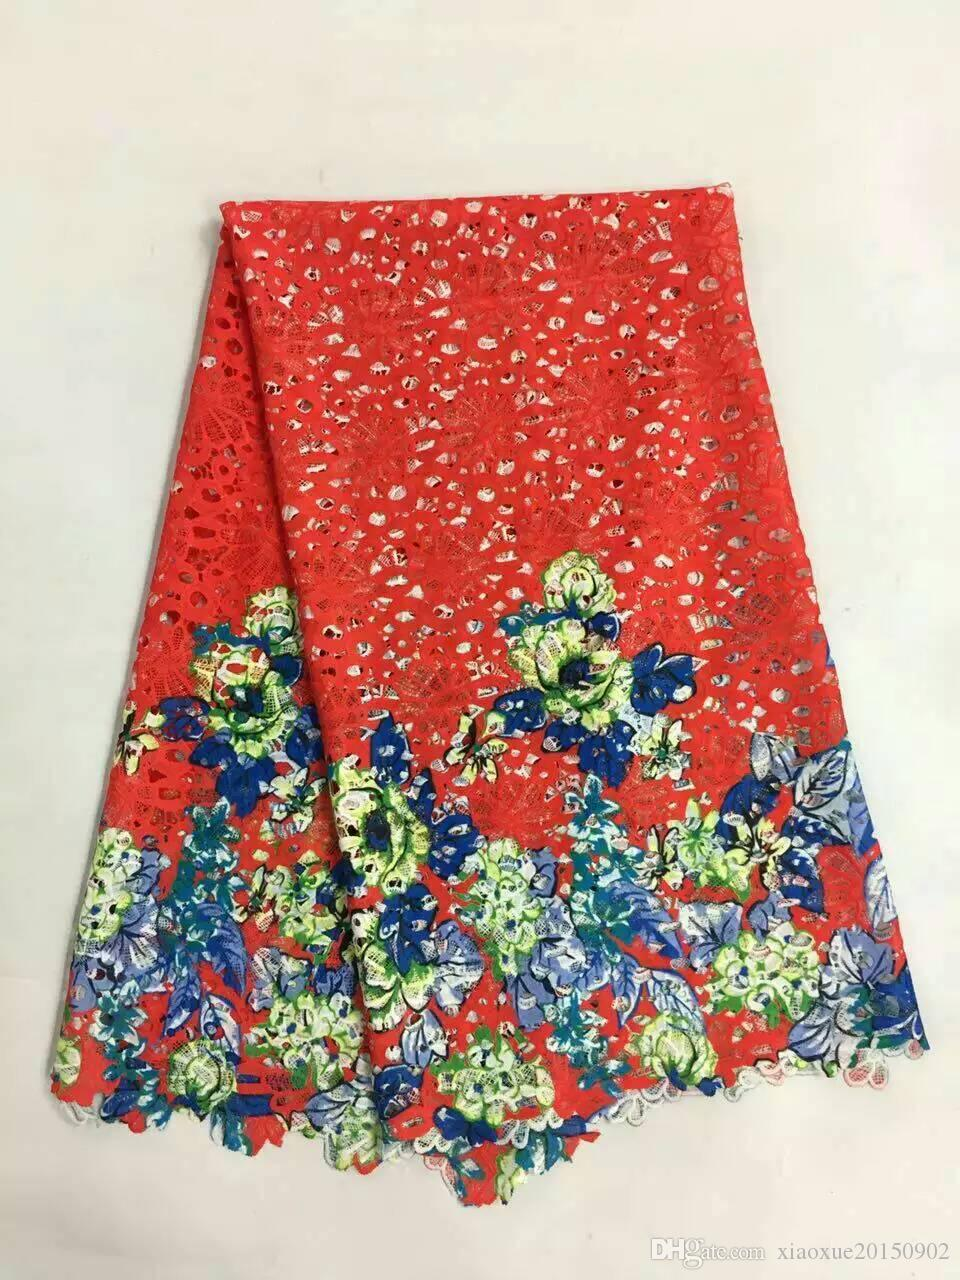 2018 Zr72 27!hot Selling Milk Silk Printed Cord Lace Fabric,Good ...